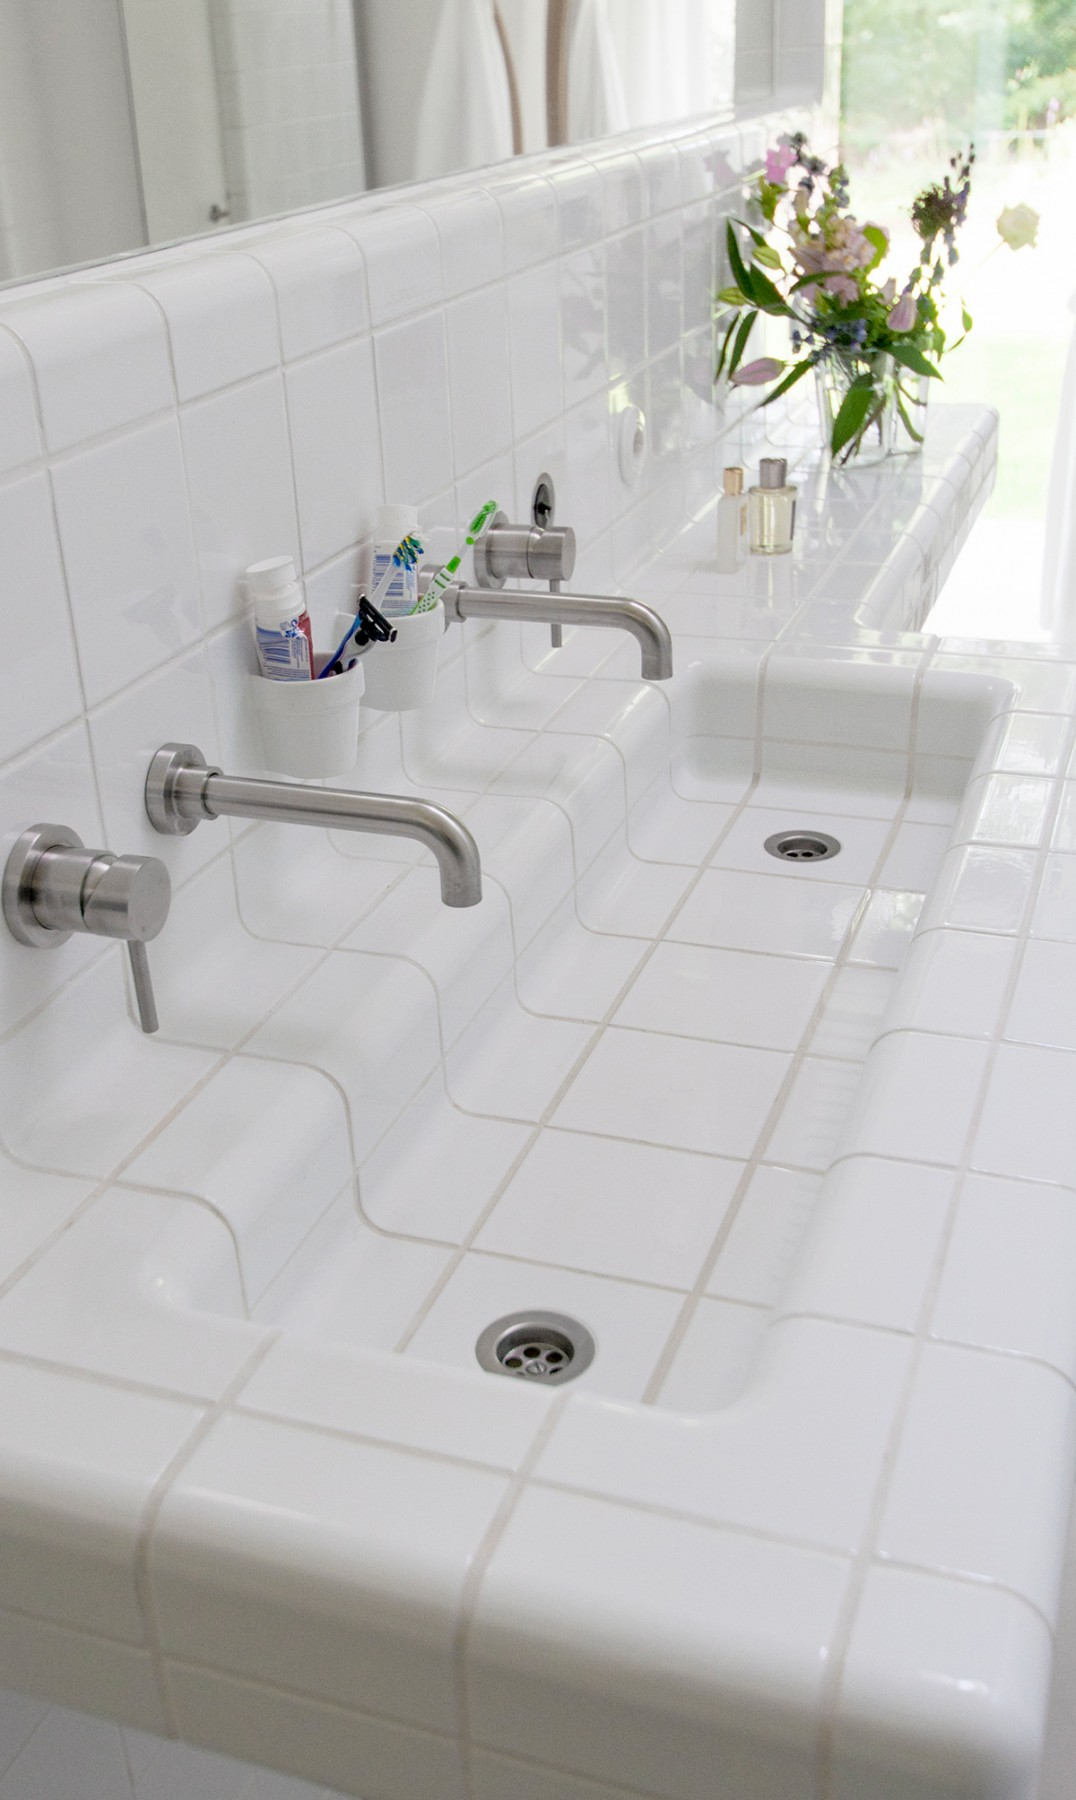 rounded white tiles in sink, three-dimensional construction and functional tiles like cupholder and taps